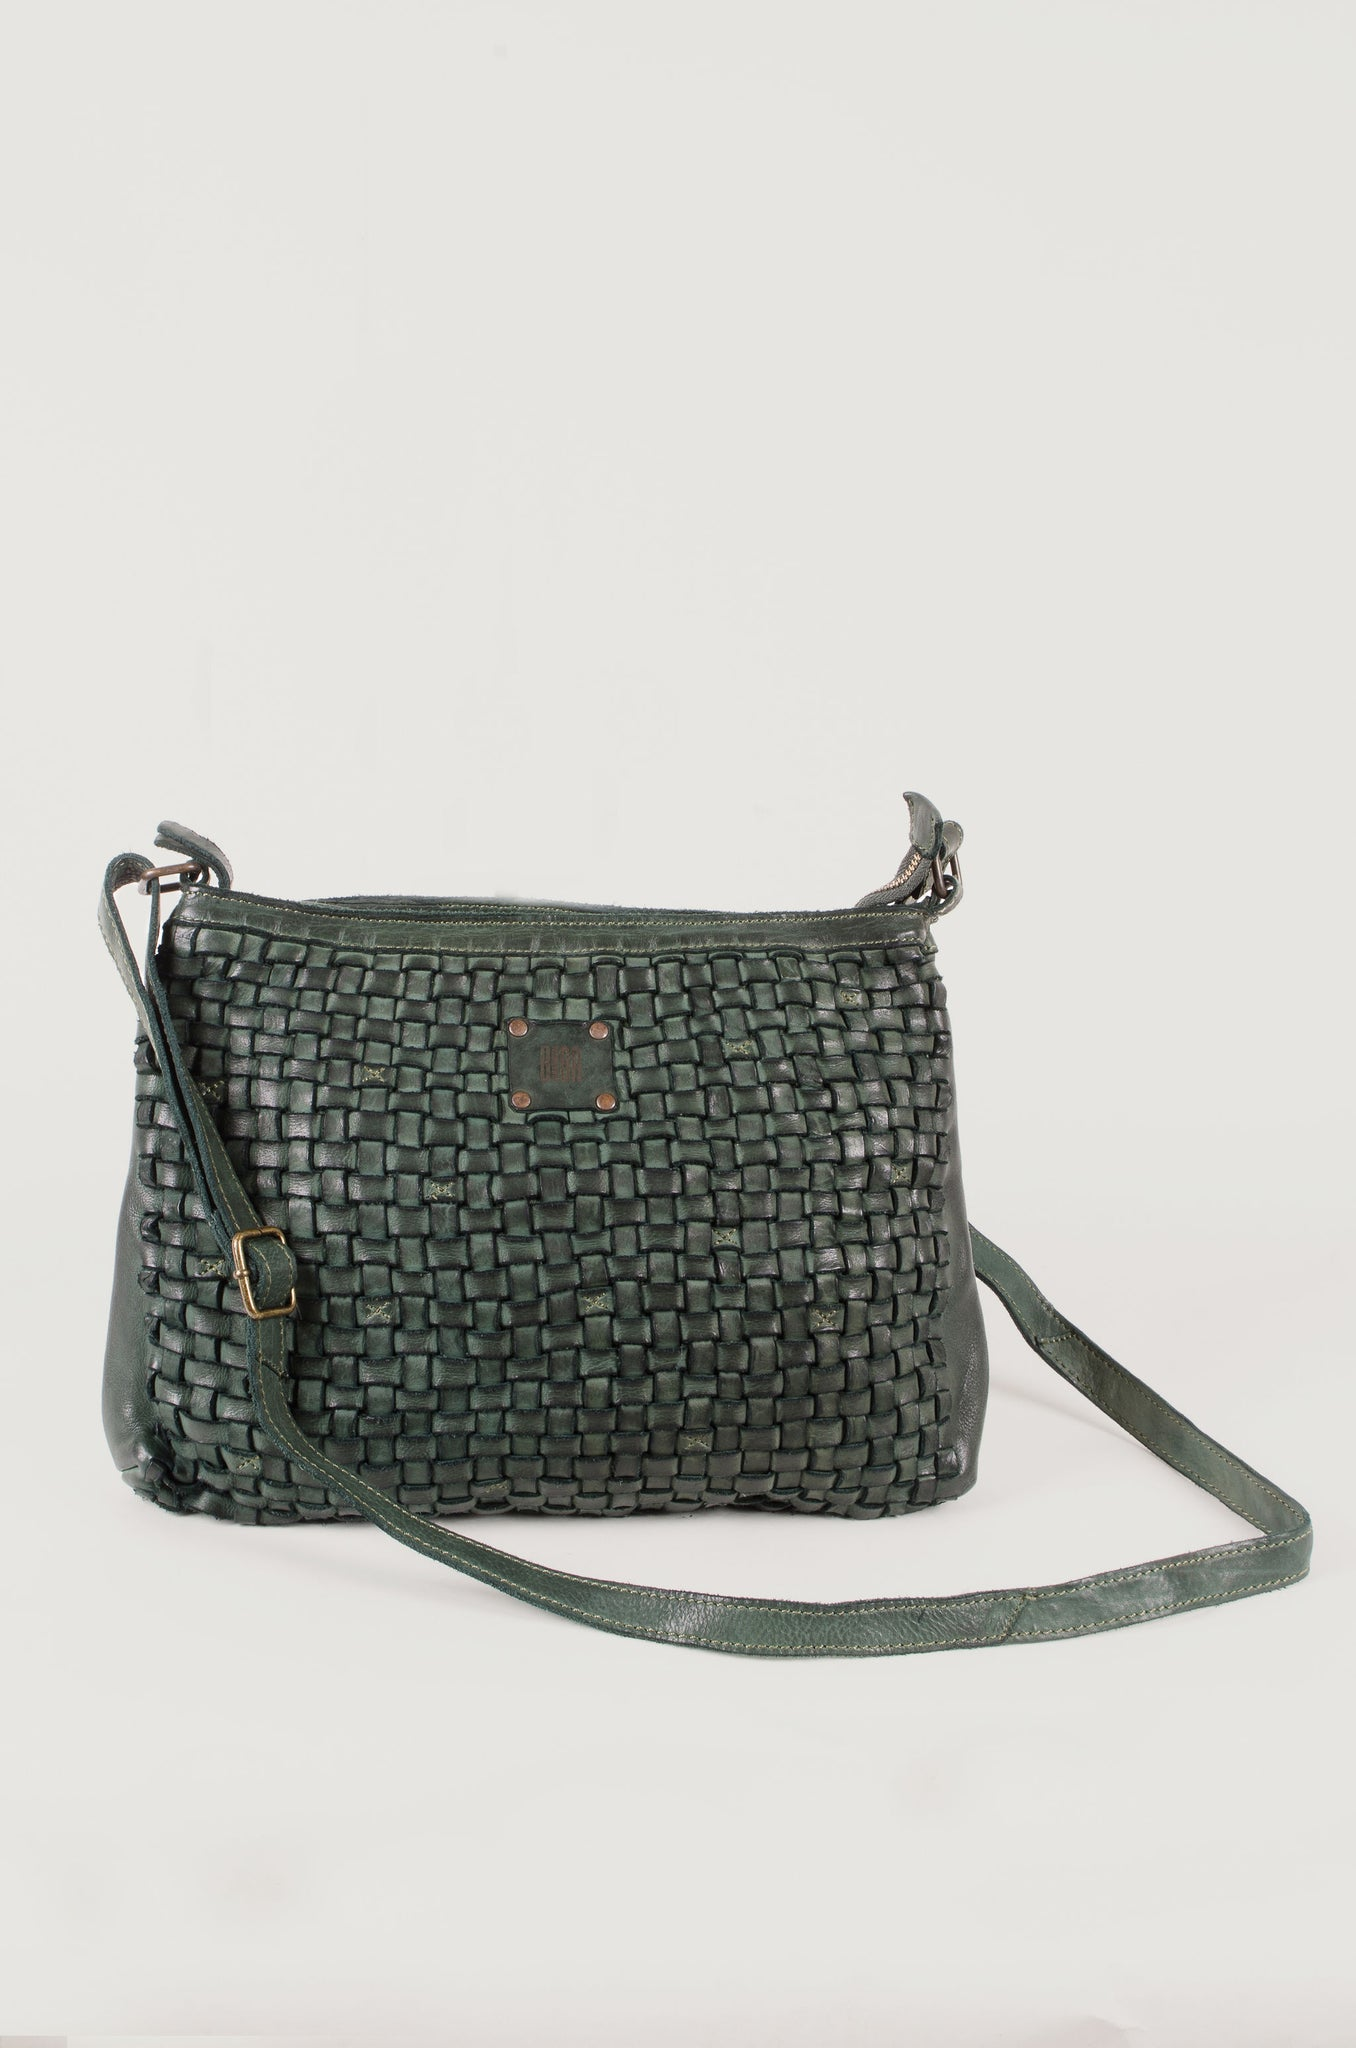 WOVEN - Medium Cross Body bag - Green